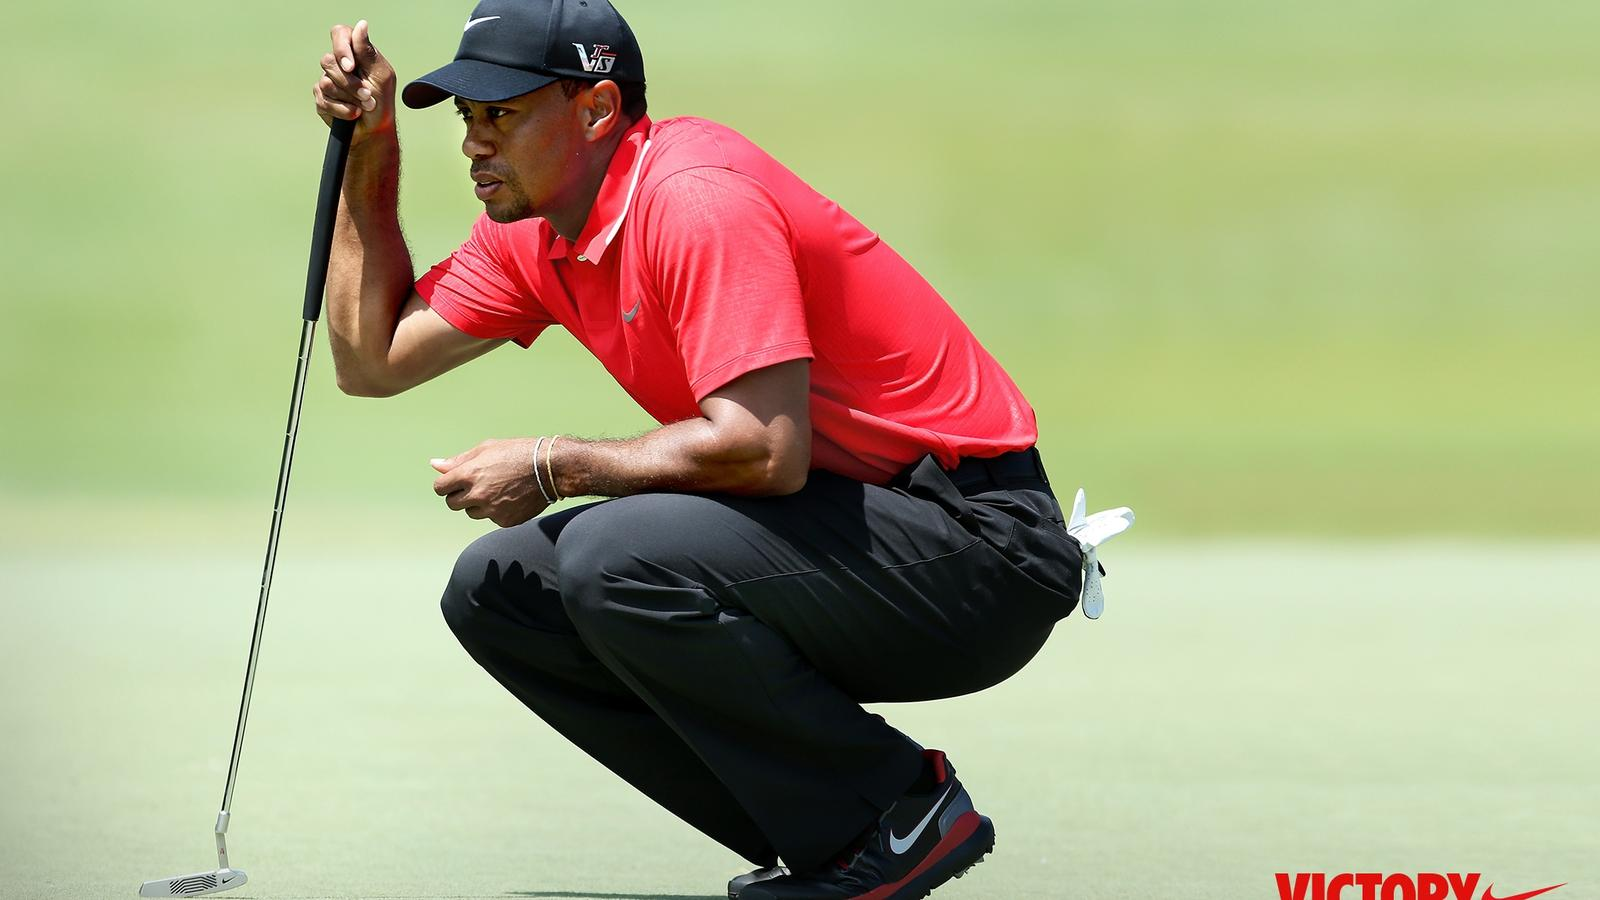 83d8bc475ee3b Nike Athlete Tiger Woods Claims Fourth Victory of the Season - Nike News